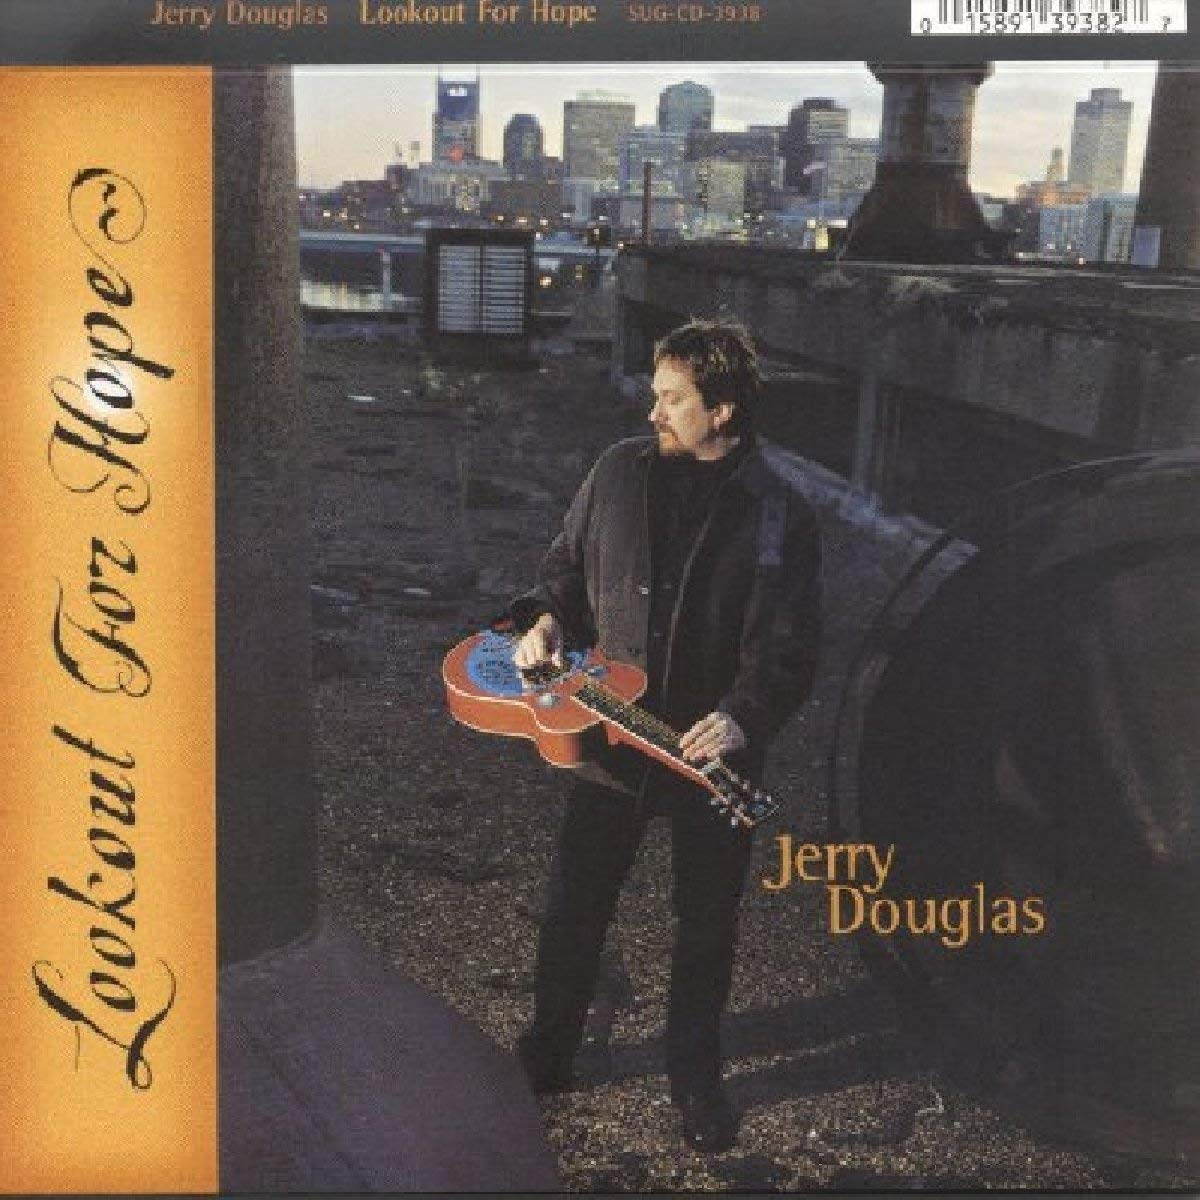 CD Jerry Douglas ‎– Lookout For Hope